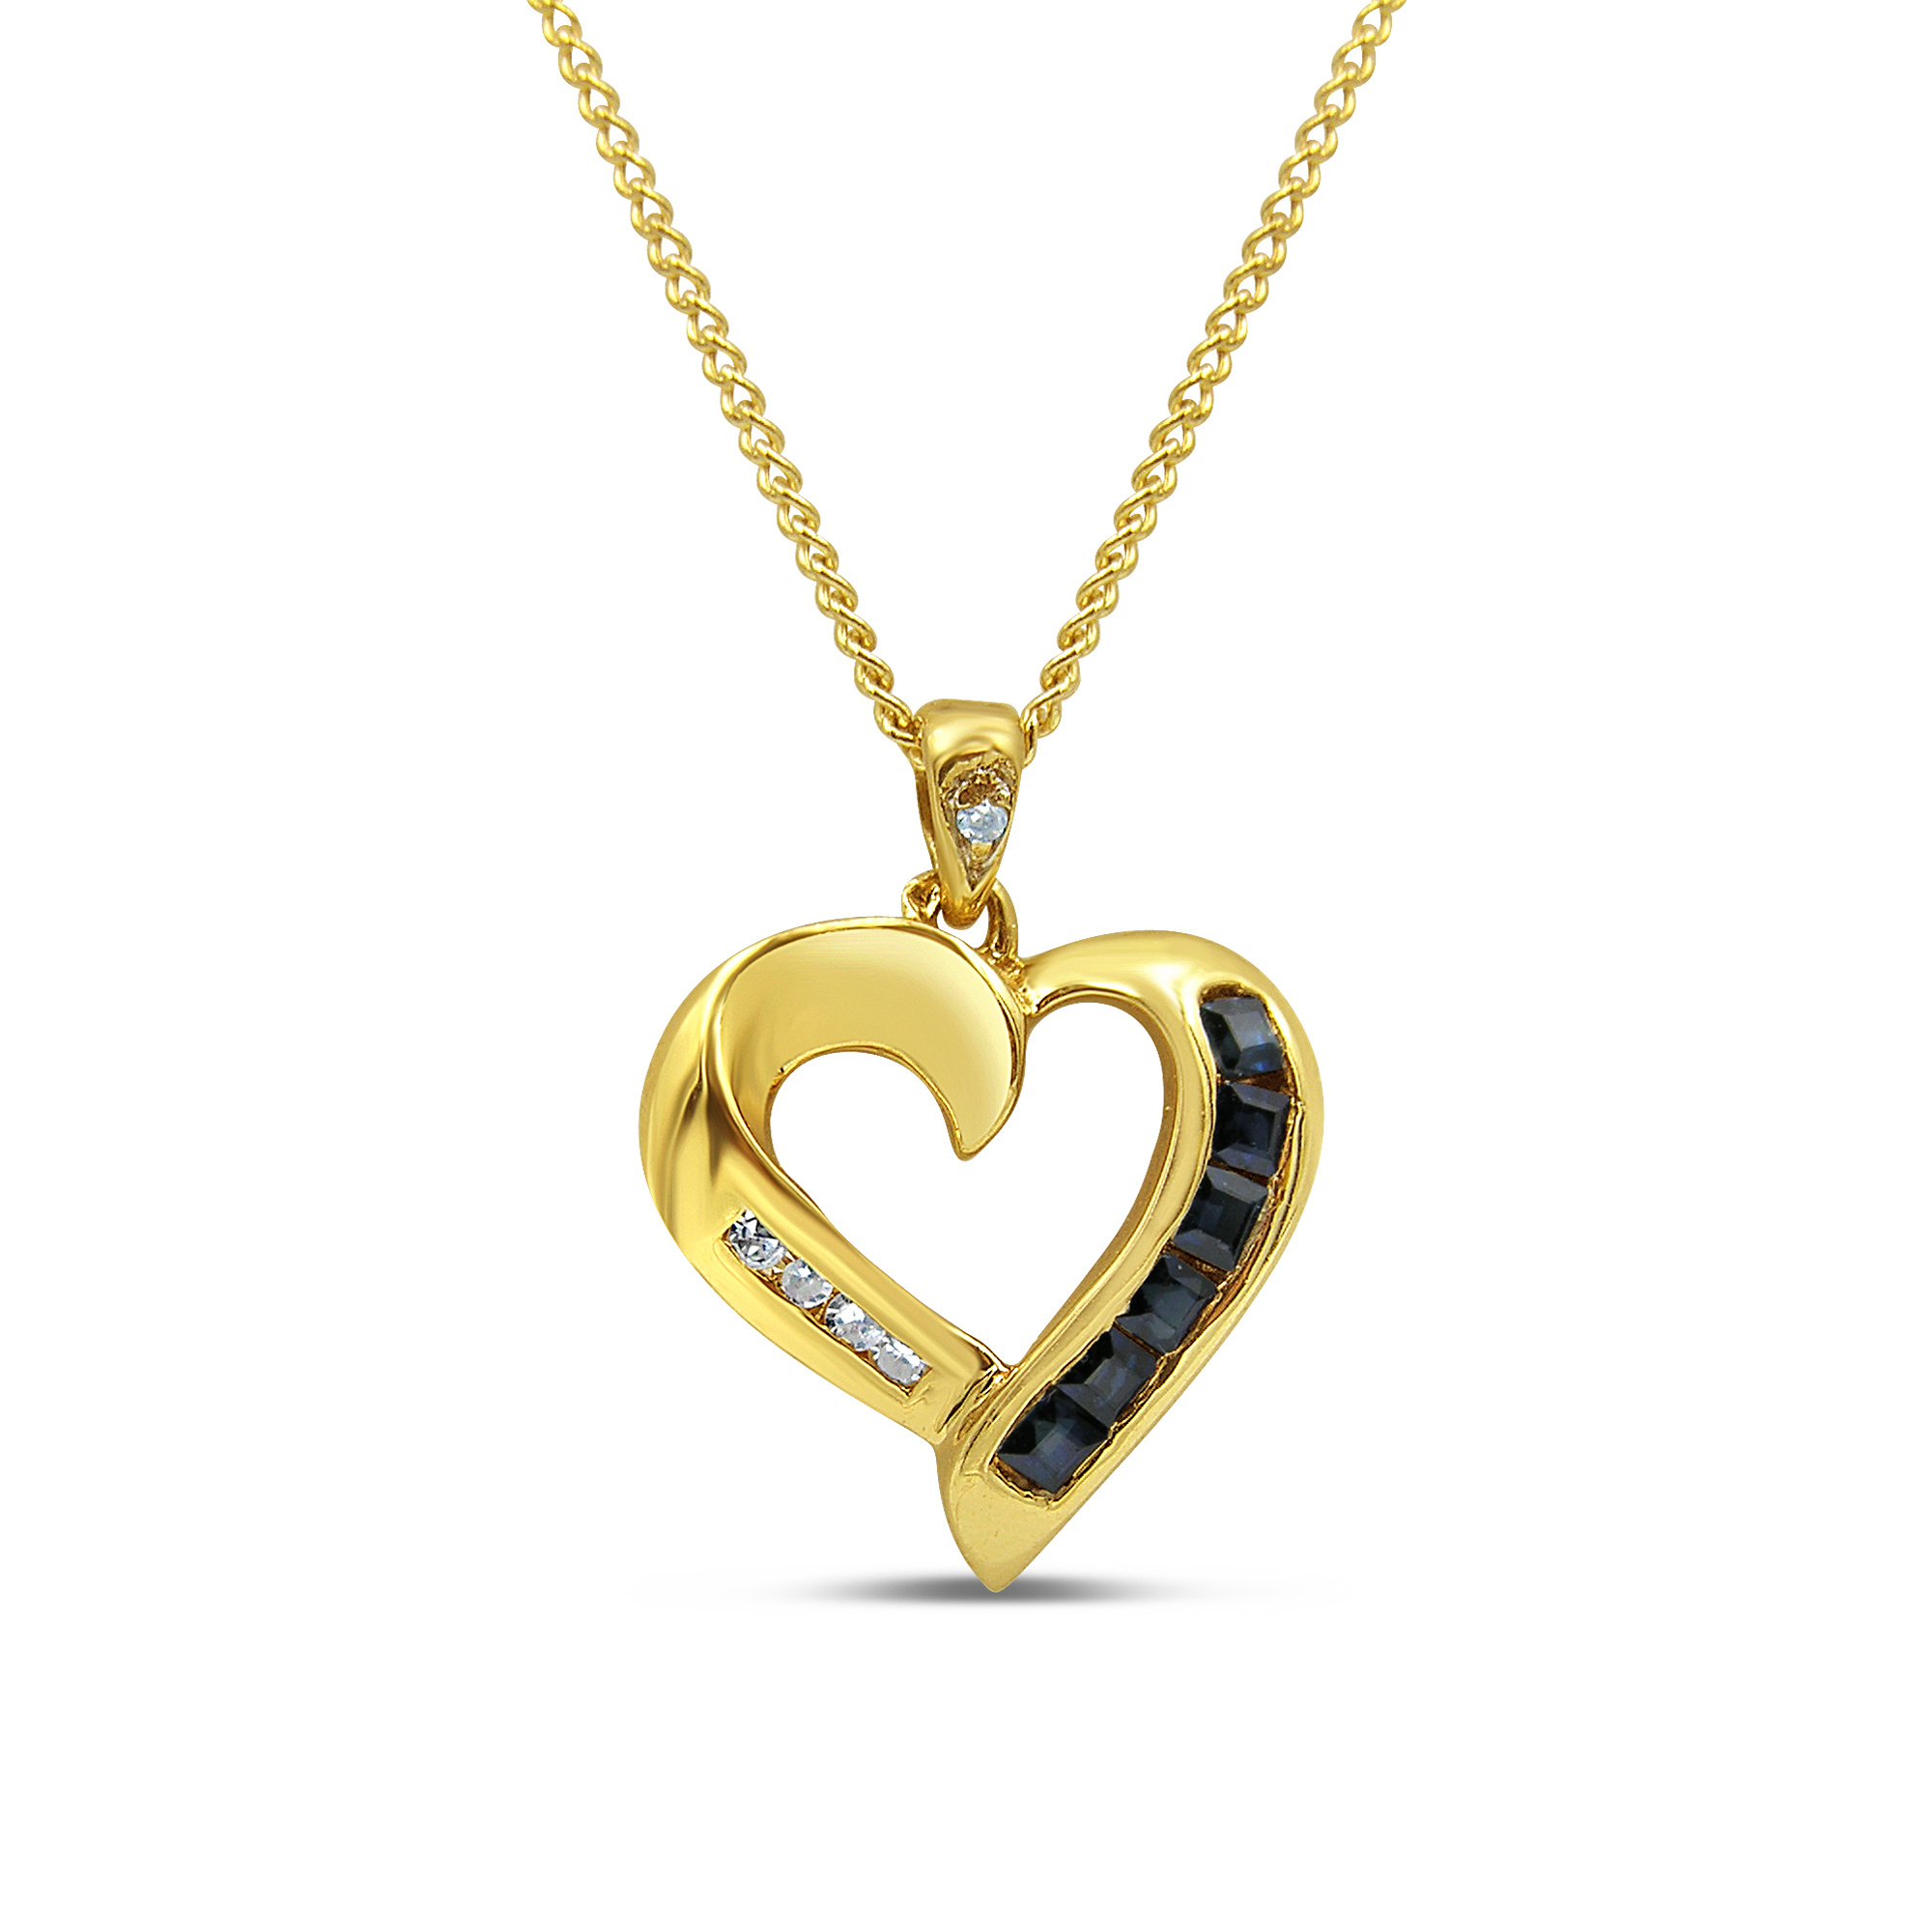 18kt yellow gold heart pendant with 0.12 ct sapphire & 0.05 ct diamonds